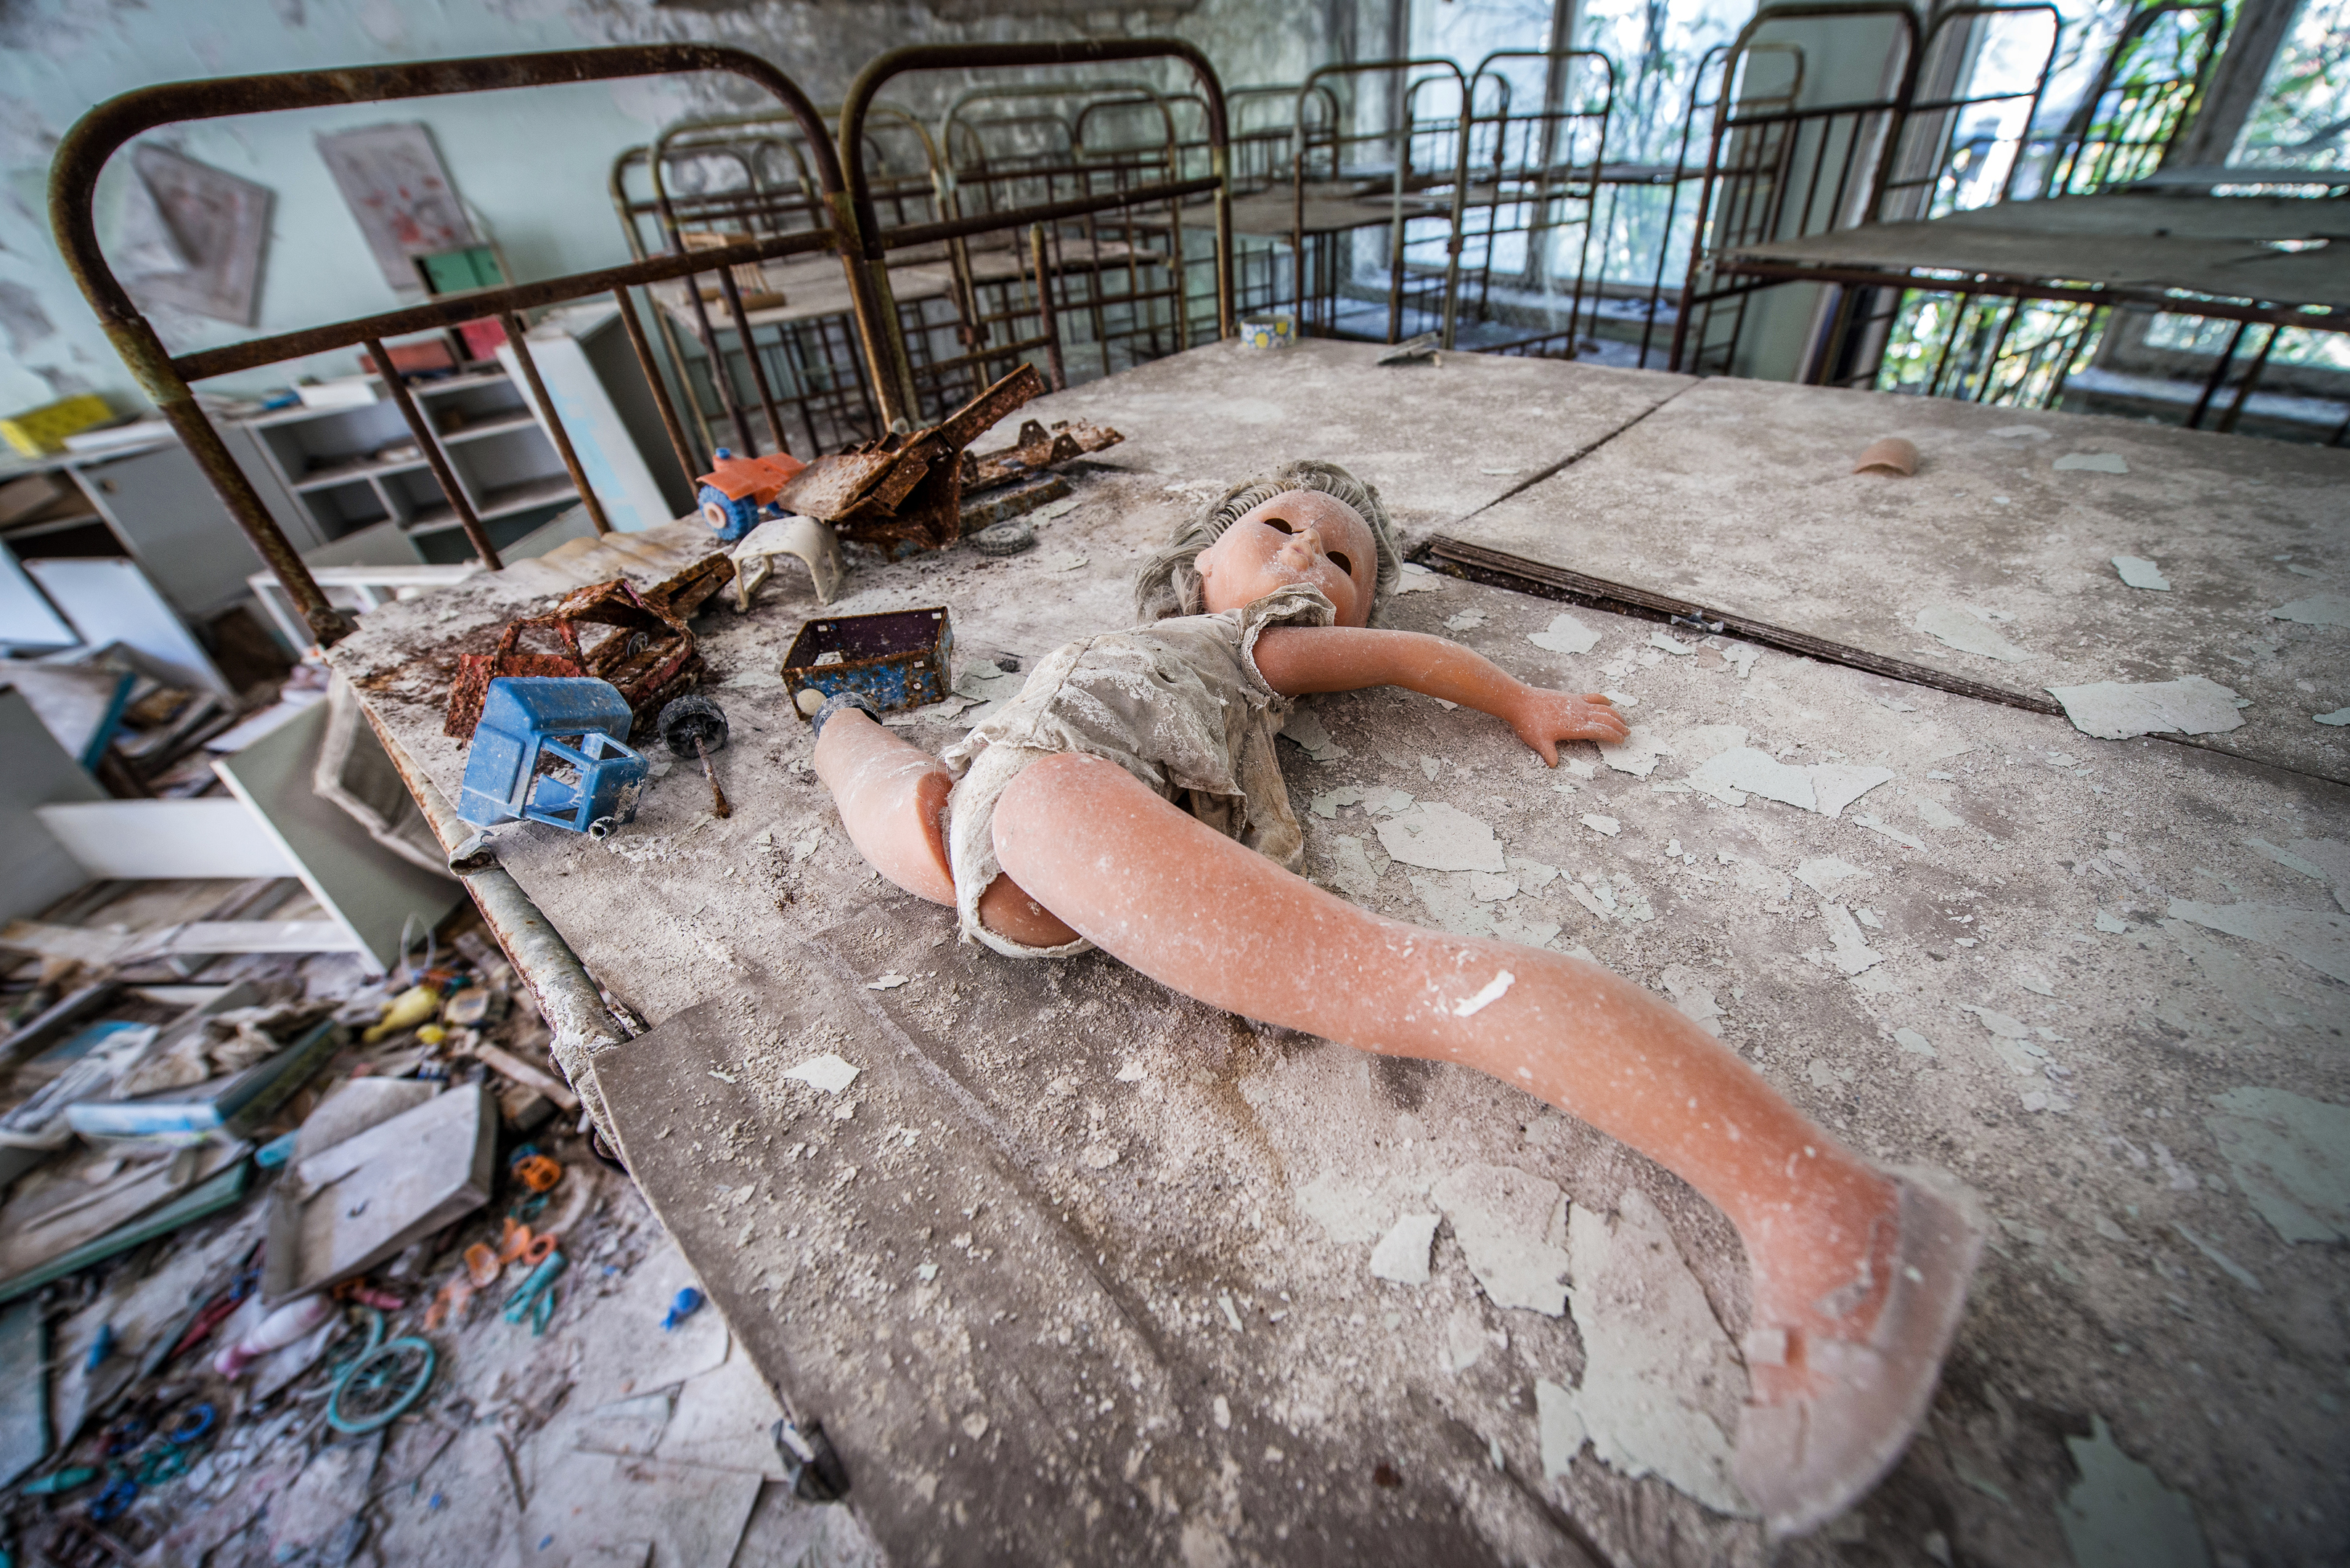 children beds in Cheburashka kindergarten in Pripyat ghost town, Chernobyl Nuclear Power Plant Zone of Alienation, Ukraine